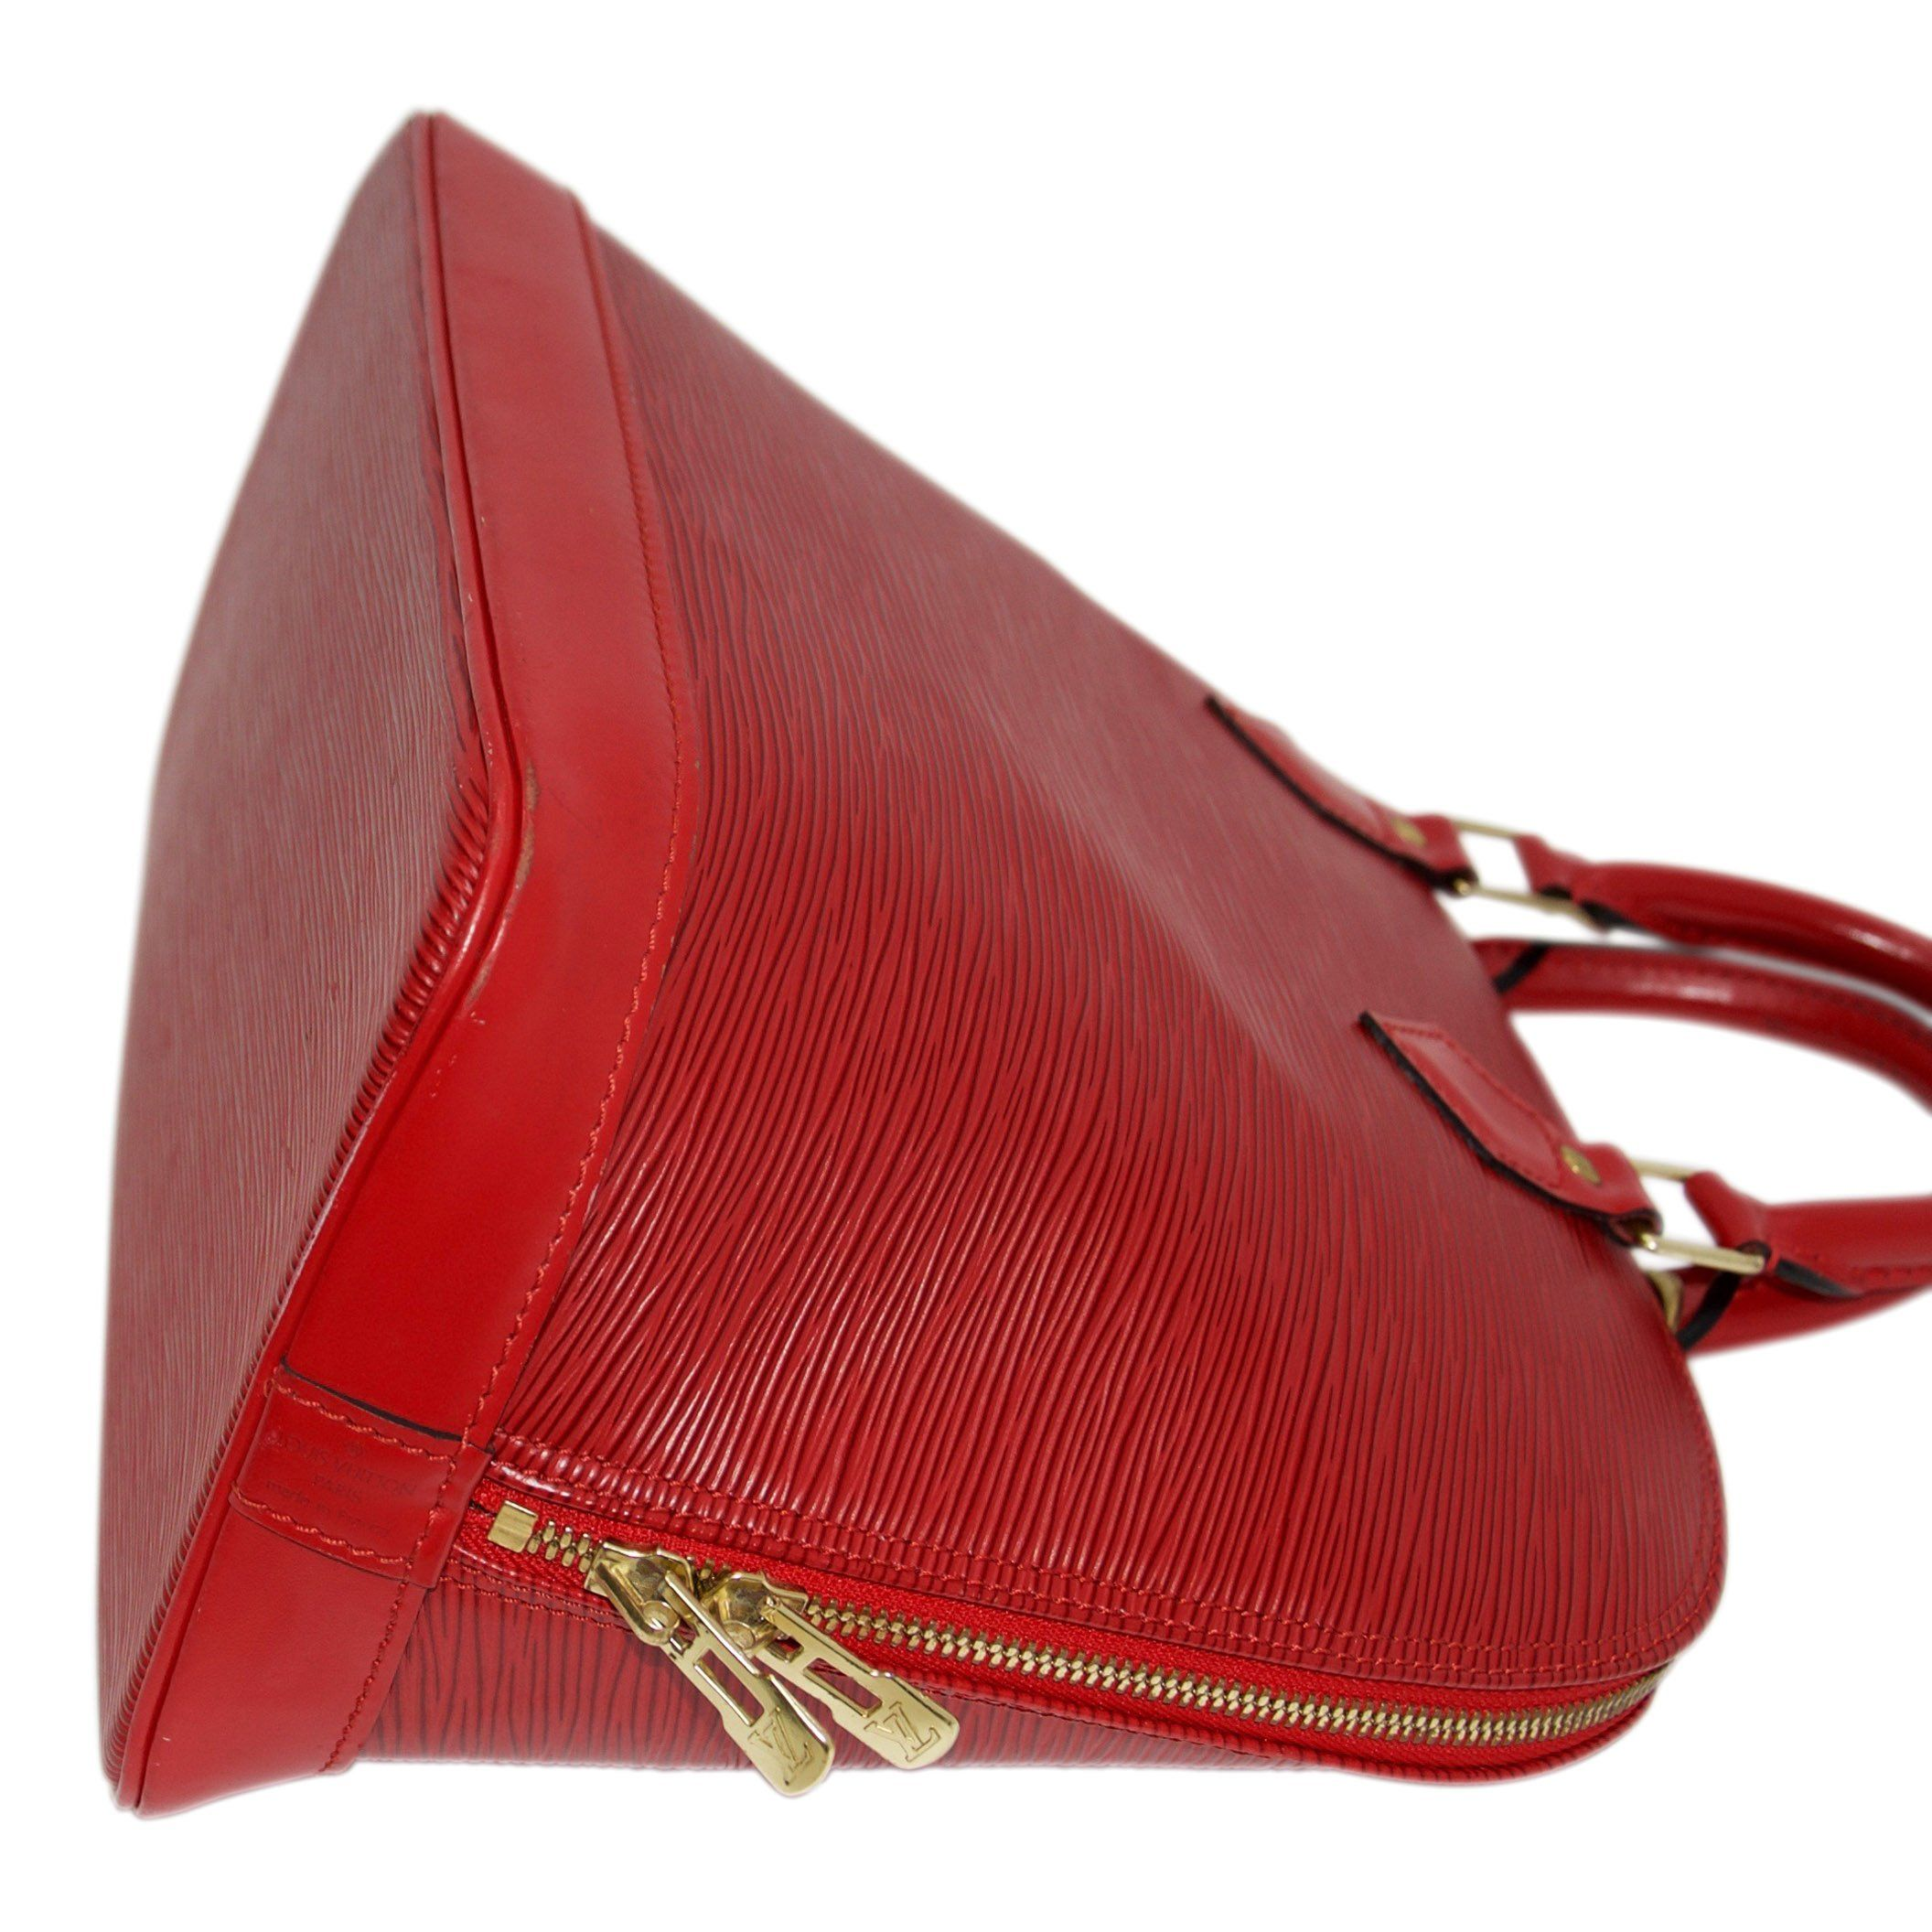 Louis Vuitton Red Epi Leather Alma PM - Oliver Jewellery d5bf989fa3c77